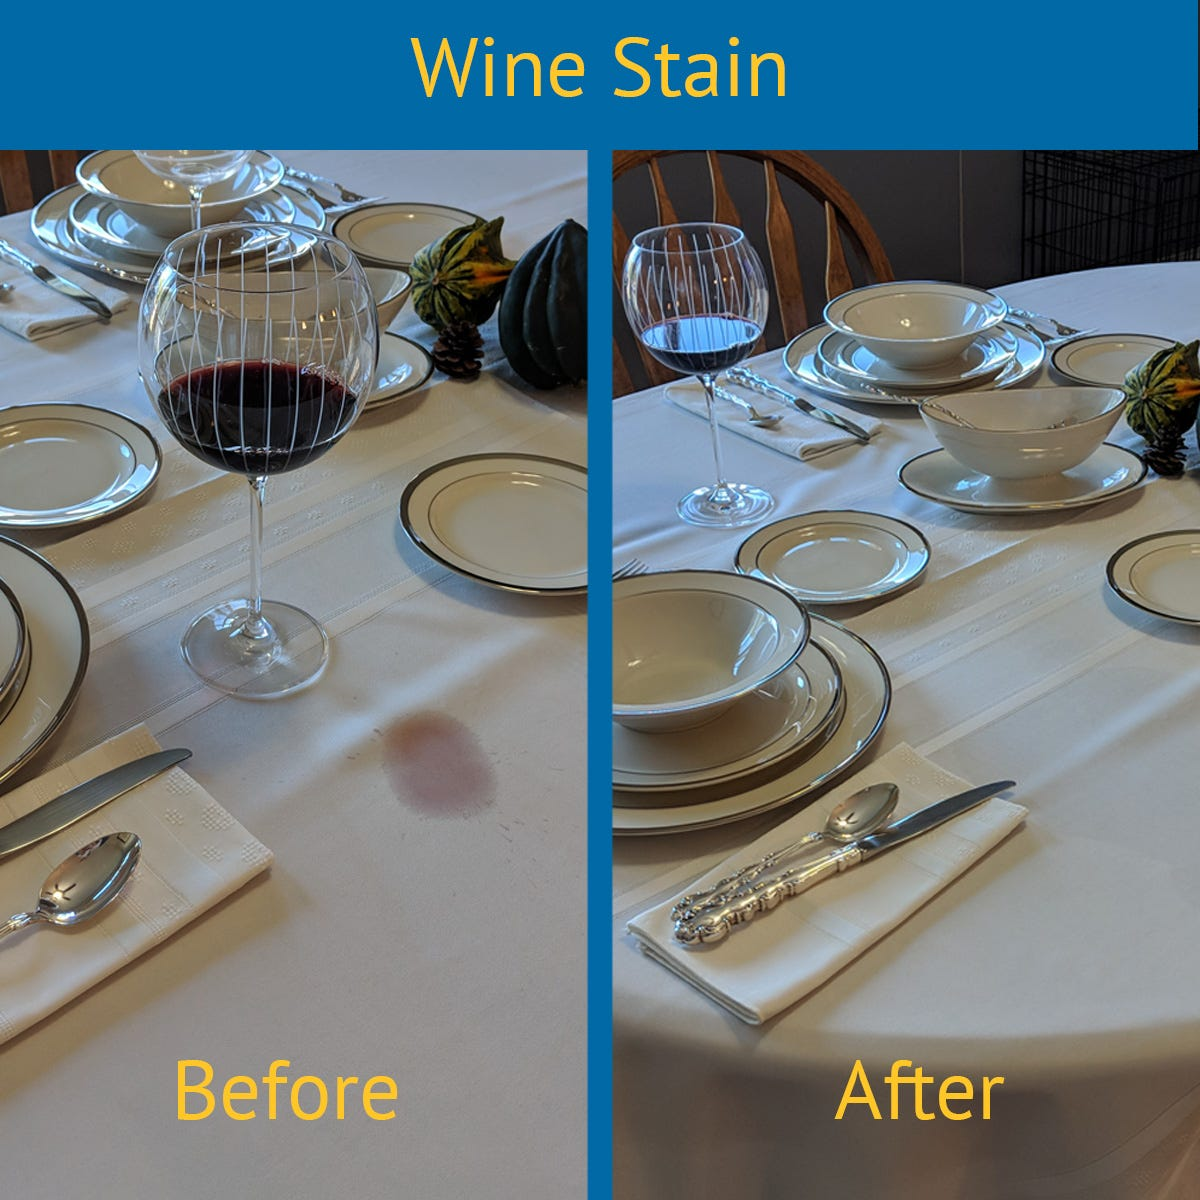 Wine Stain Before & After